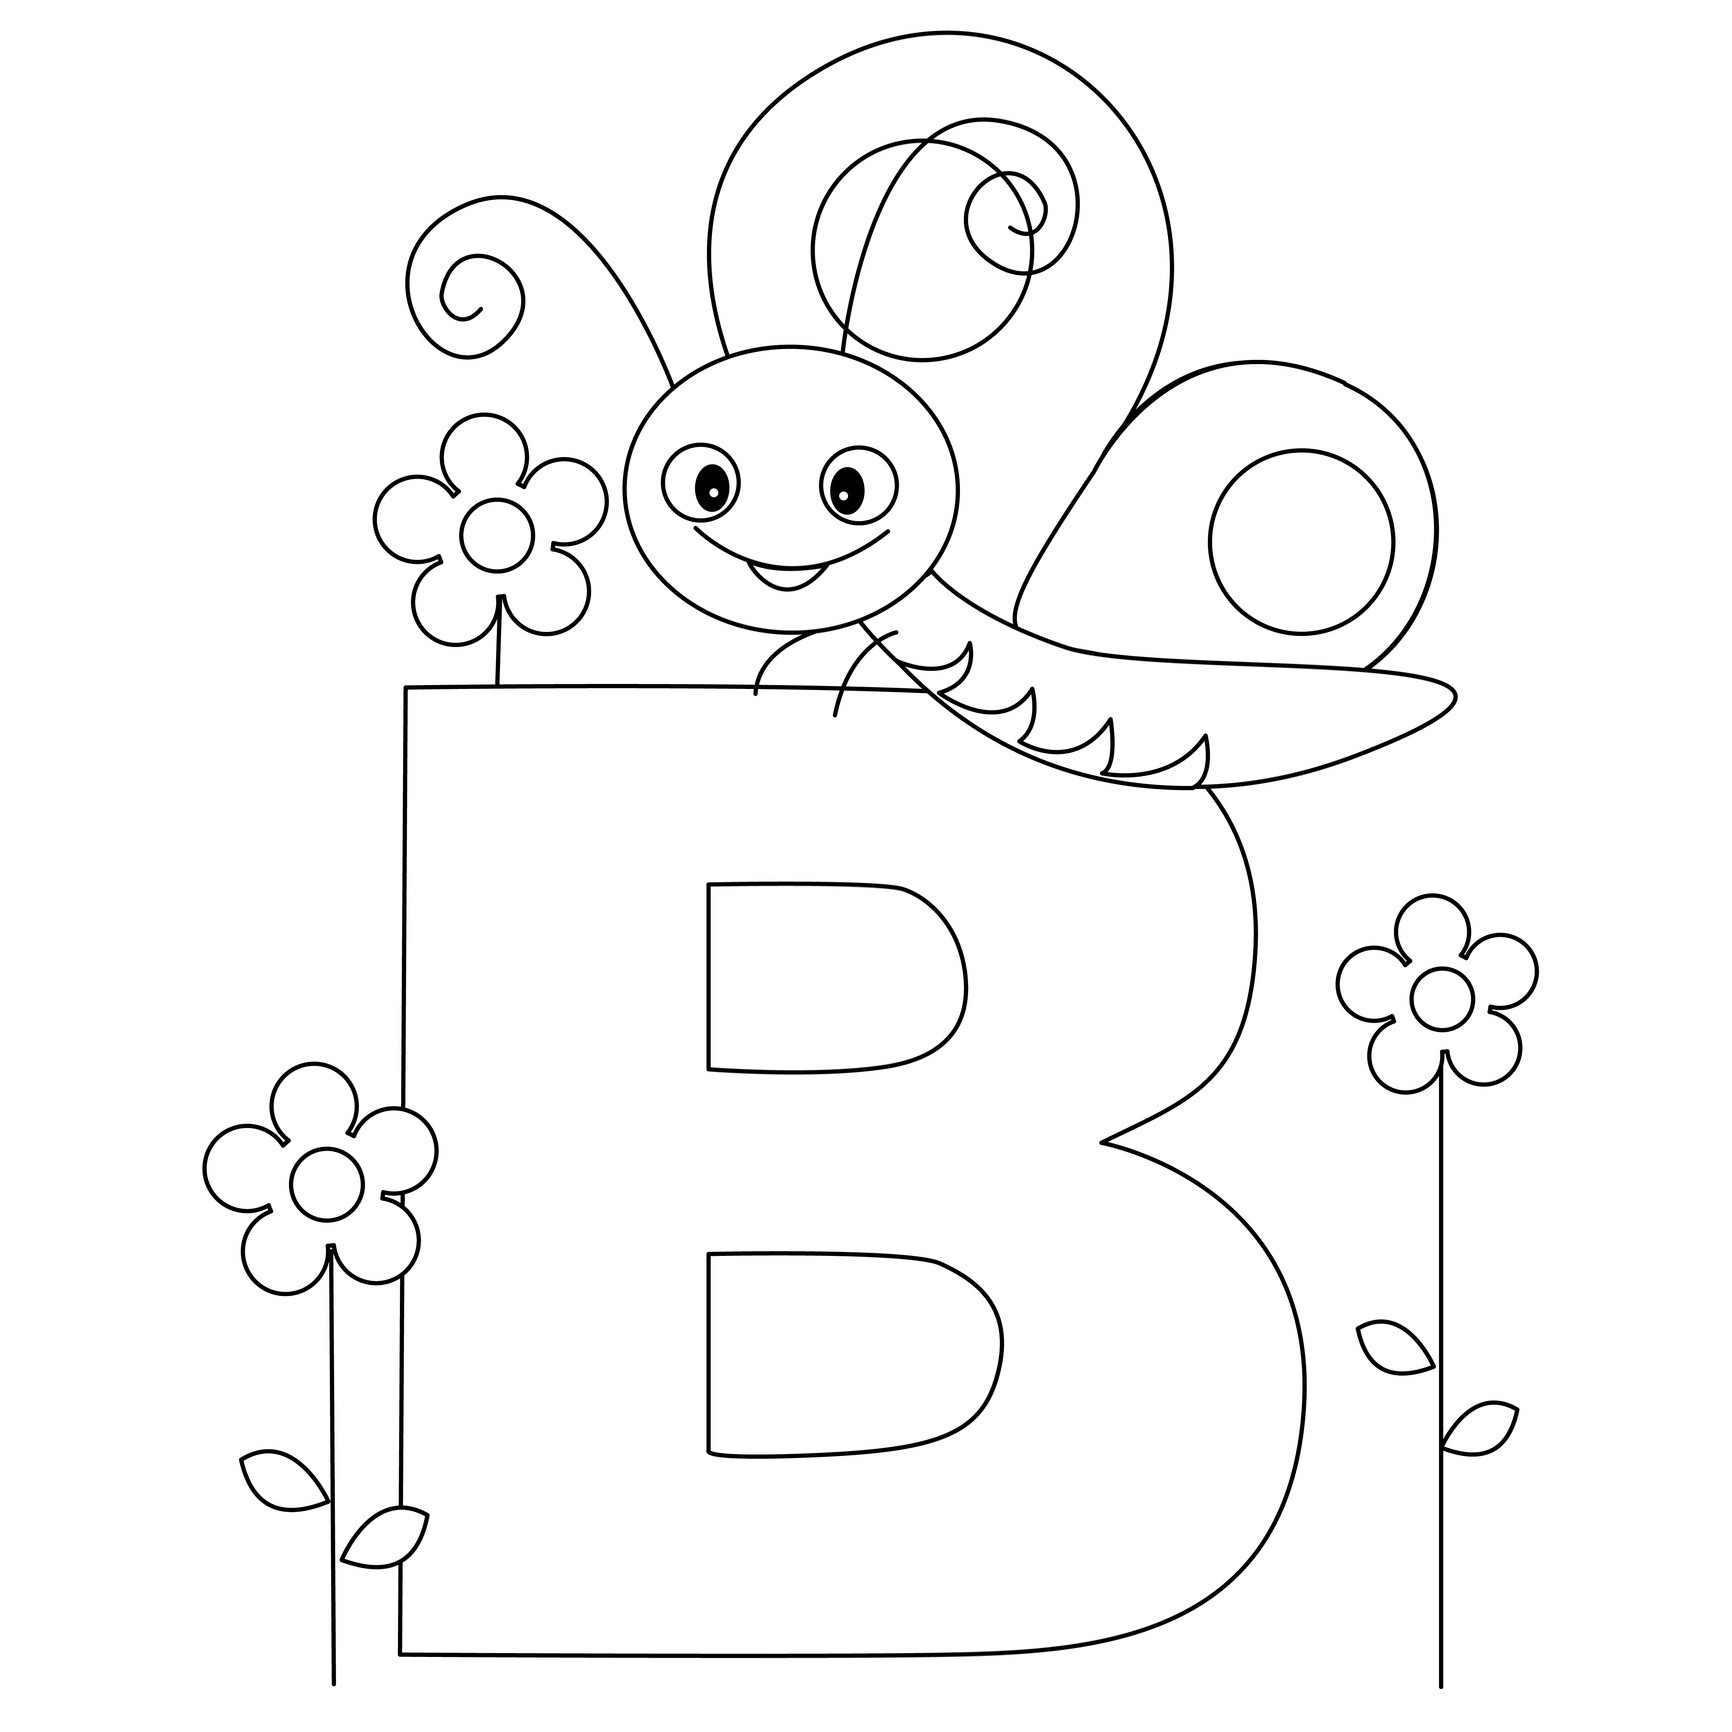 colouring pictures of alphabets free printable alphabet coloring pages for kids best of pictures colouring alphabets